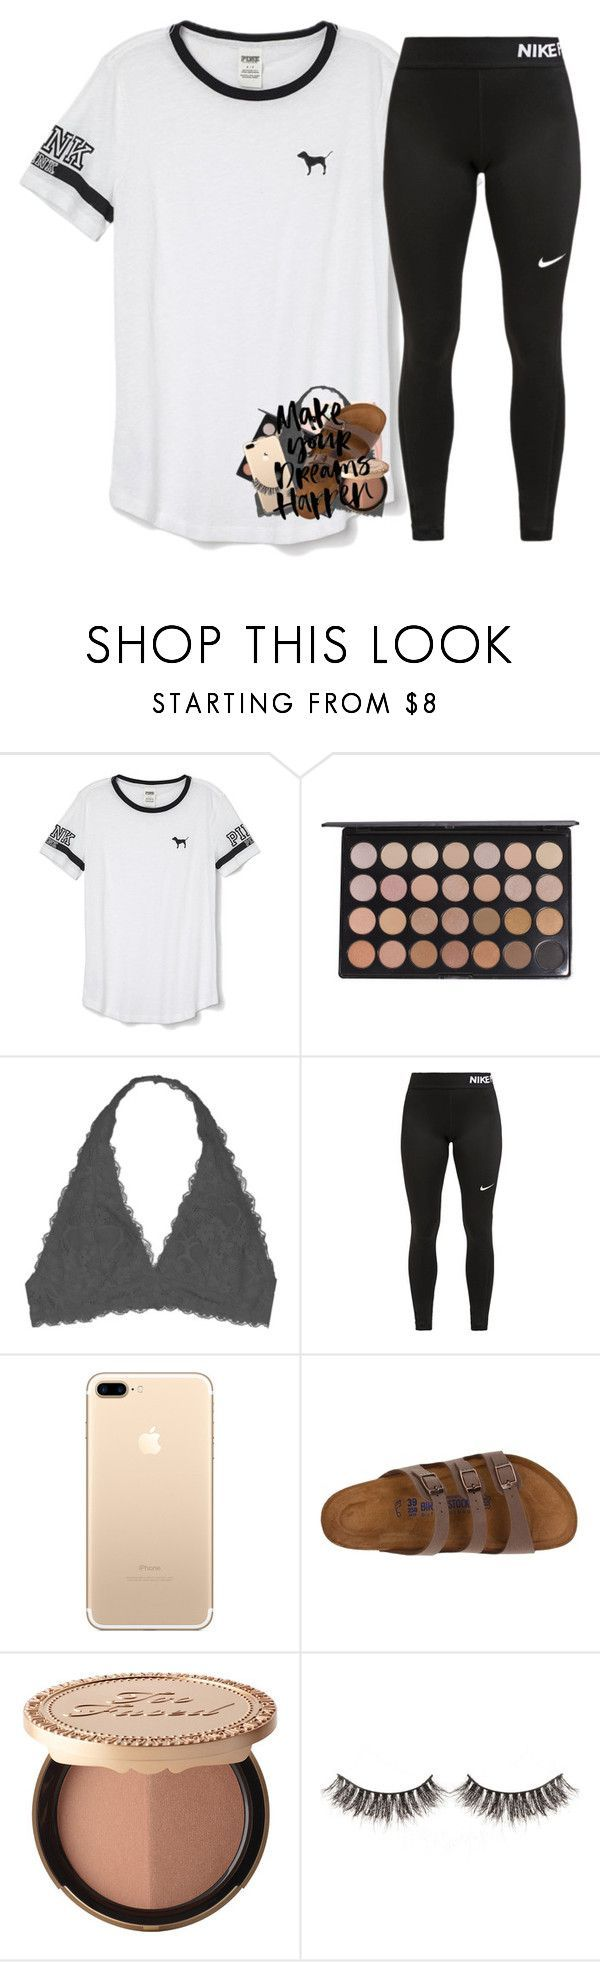 """School pics tomorrow "" by abigailcdunn ❤ liked on Polyvore featuring Victoria's Secret PINK, Fujifilm, Youmita, NIKE, Birkenstock and Too Faced Cosmetics"